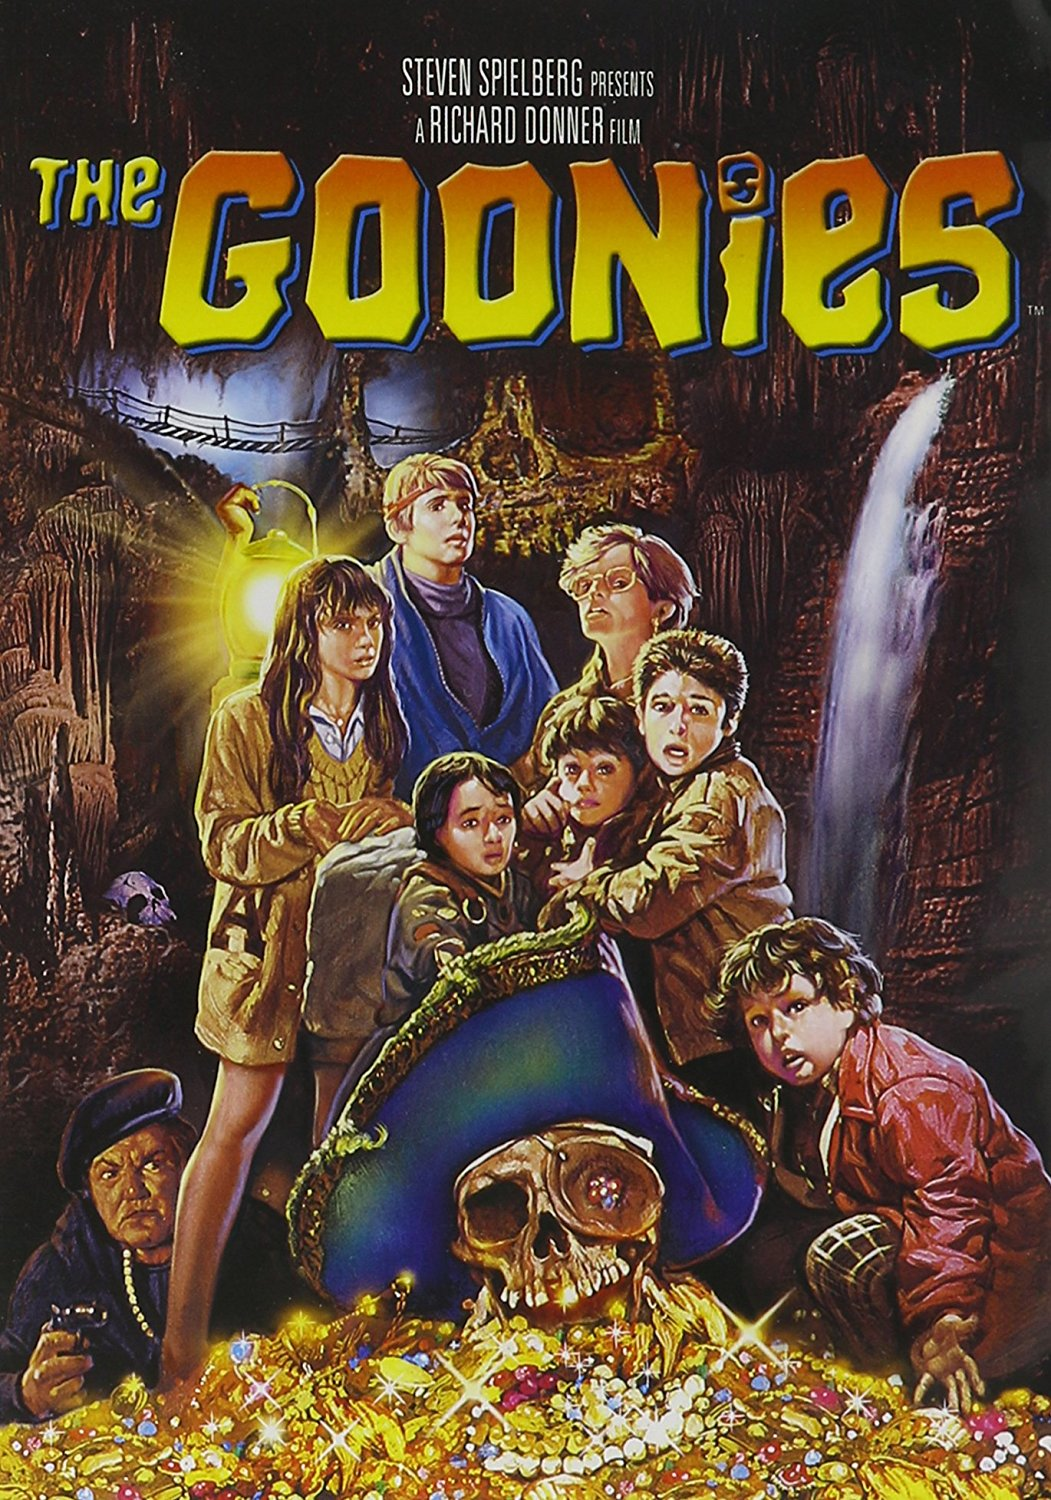 Sunday 25 March at 3pm  Tickets - £5  Hey you guys! We are screening classic 80's family fave The Goonies, about a group of kids who try and save their homes from demolition by going on an adventure to find legendary pirate One-Eyed Willy's treasure. Goonies never say die!Re-live your youth or introduce your kids to this old classic and enjoy it as a family.